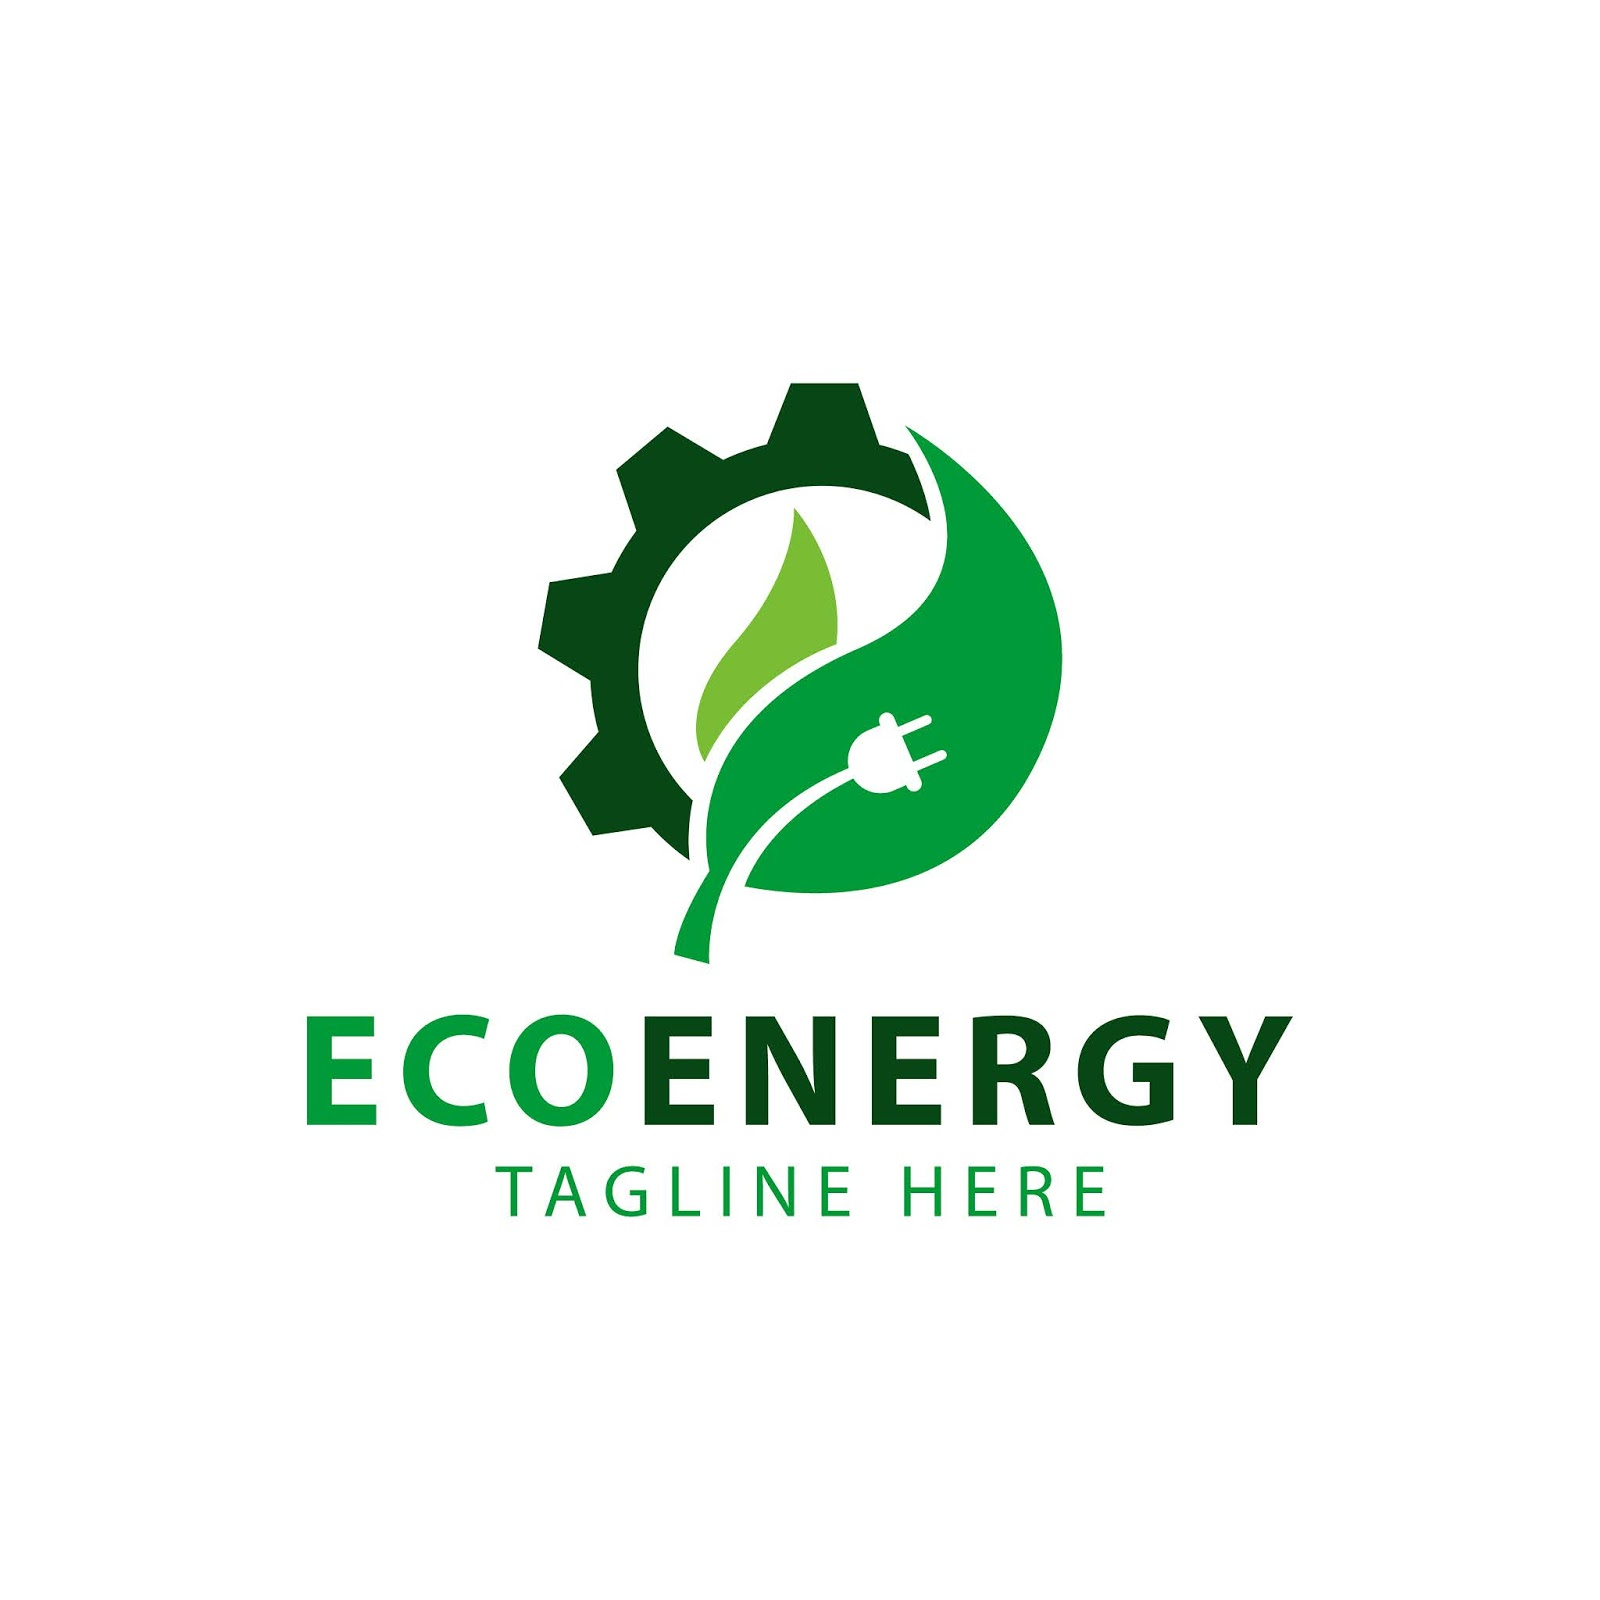 Leaf Gear Wheel Symbol Eco Energy Logo Template Design Vector Free Download Vector CDR, AI, EPS and PNG Formats